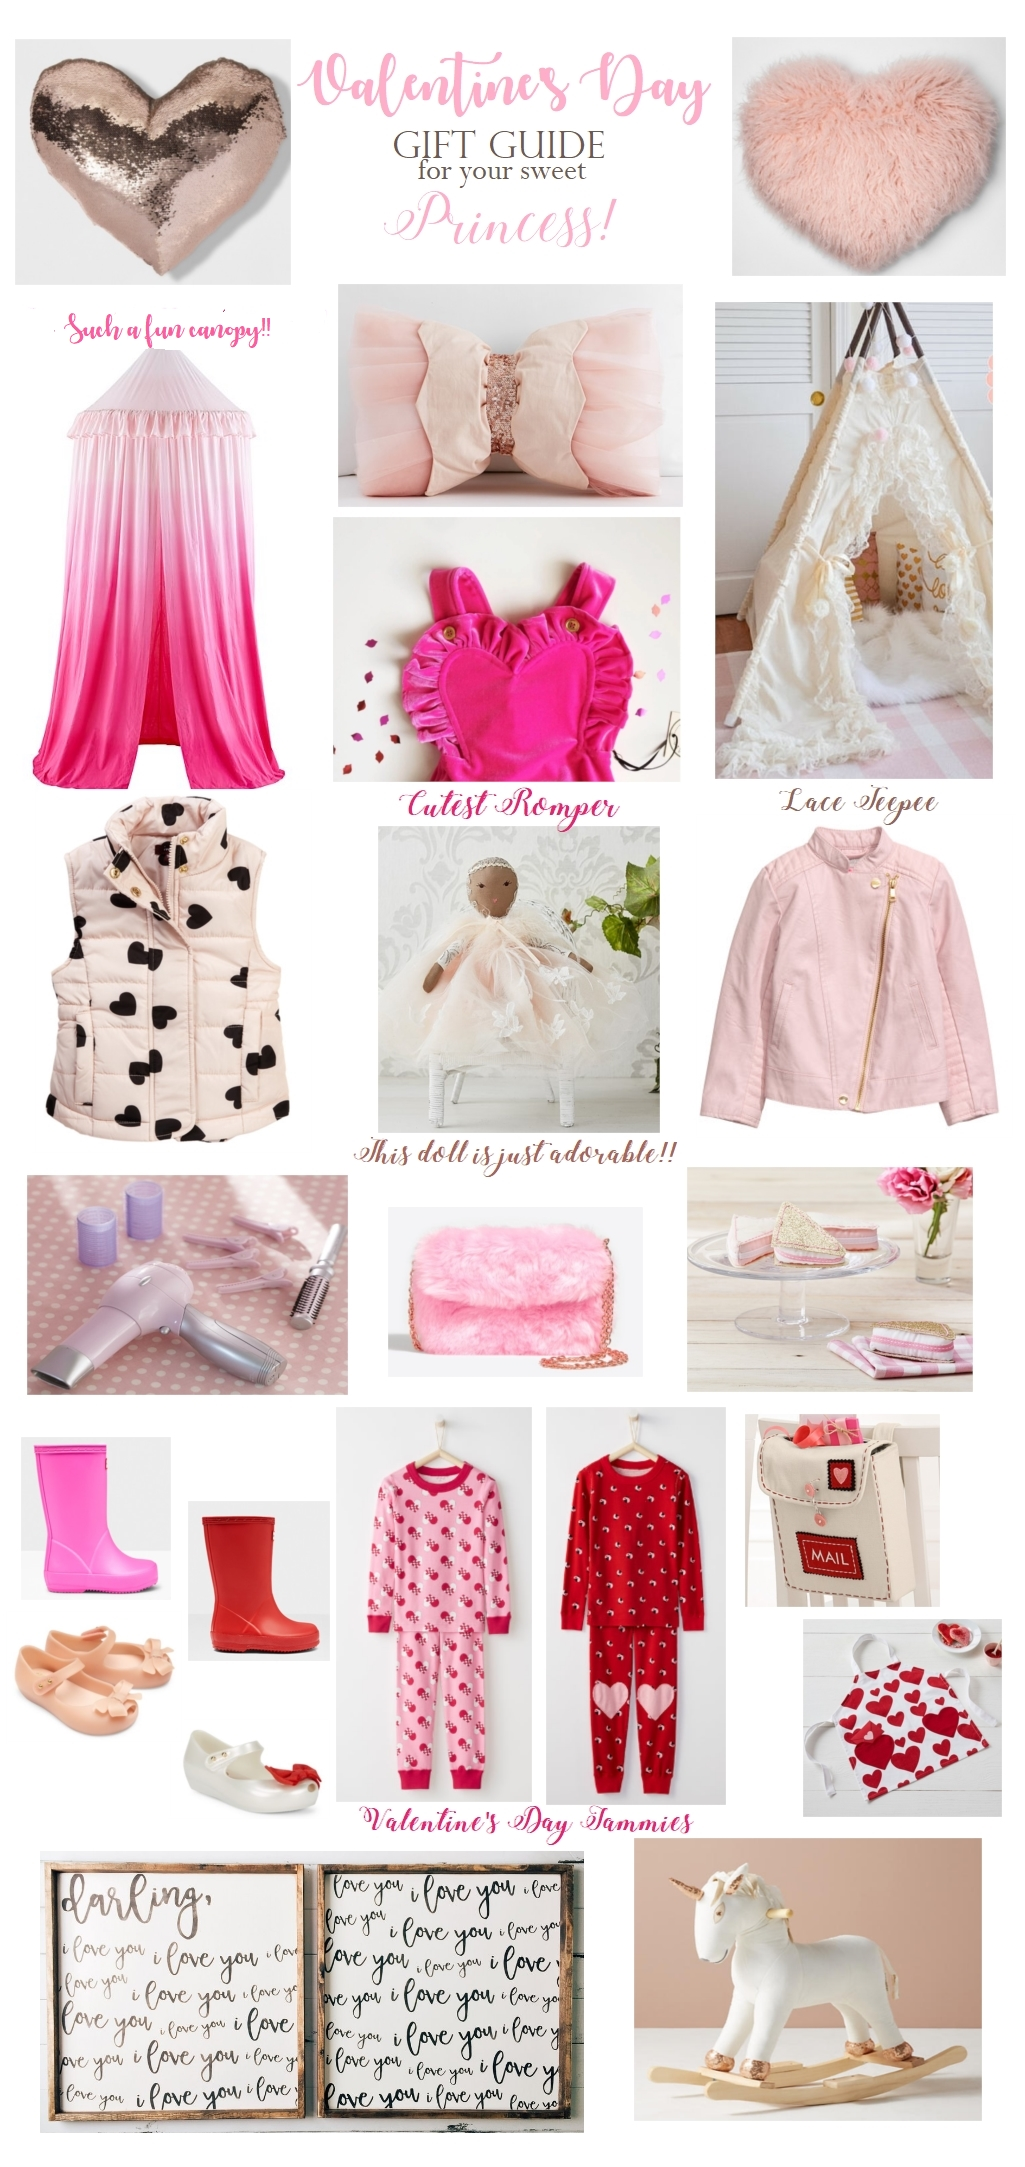 Valentine's Day Gift Guide for your Princess